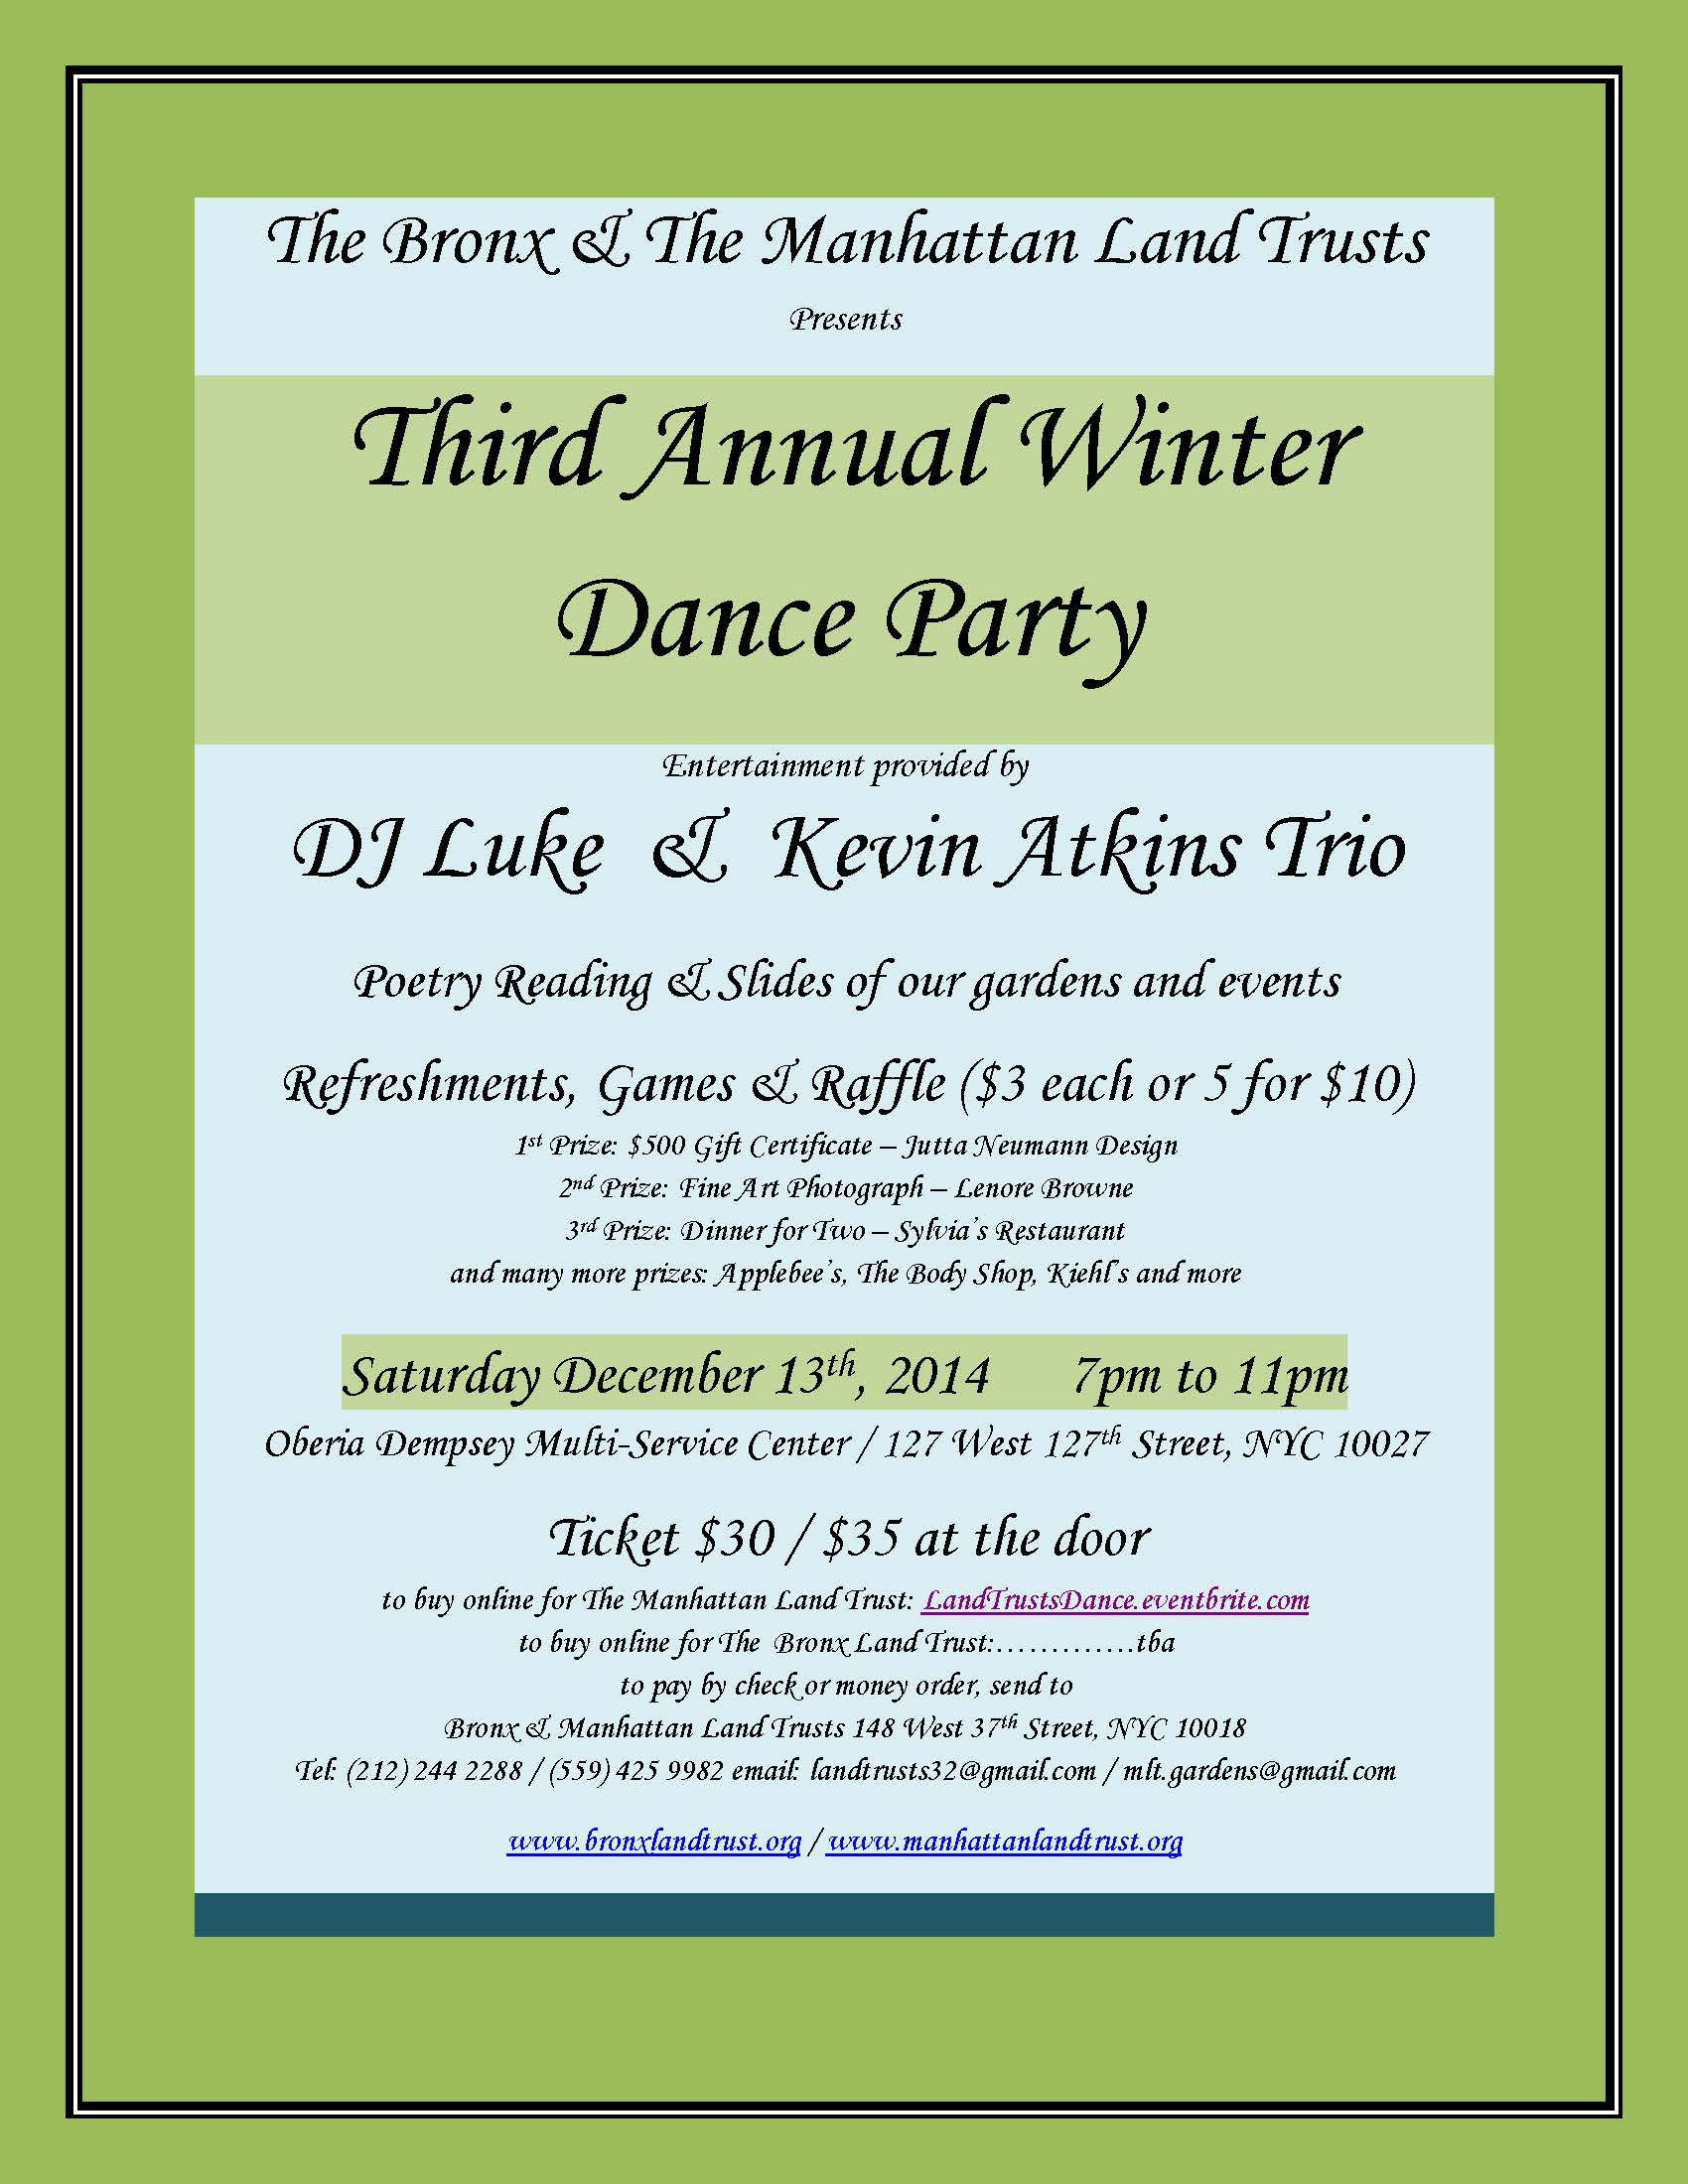 MLT & BLT 2014 Winter Dance Party December 13th